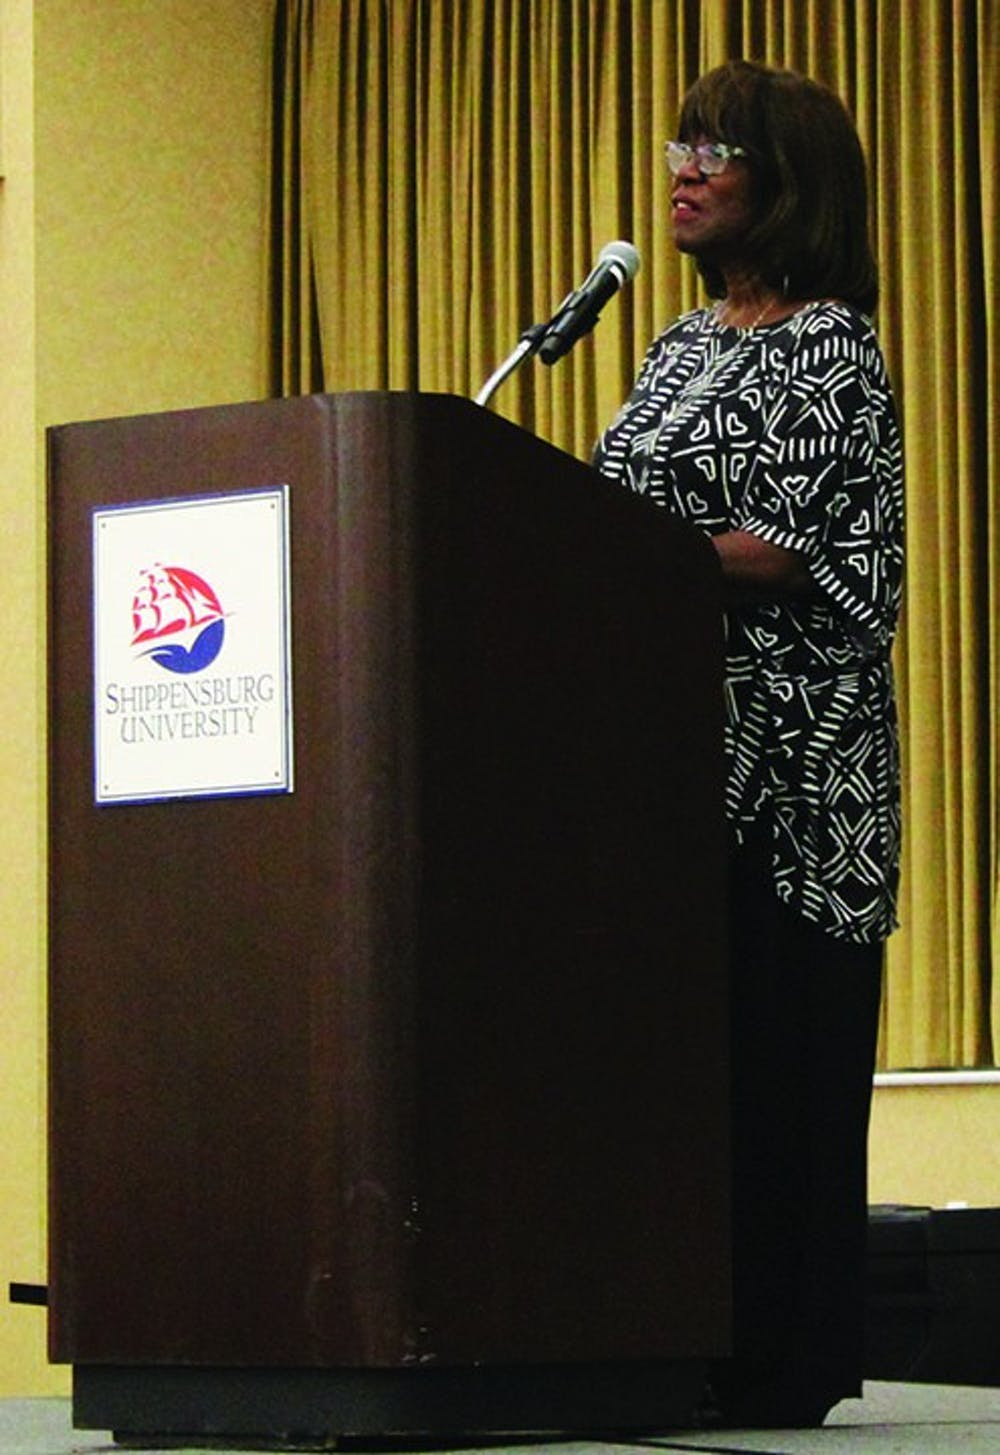 Writer uses poetry to discuss difficult topics